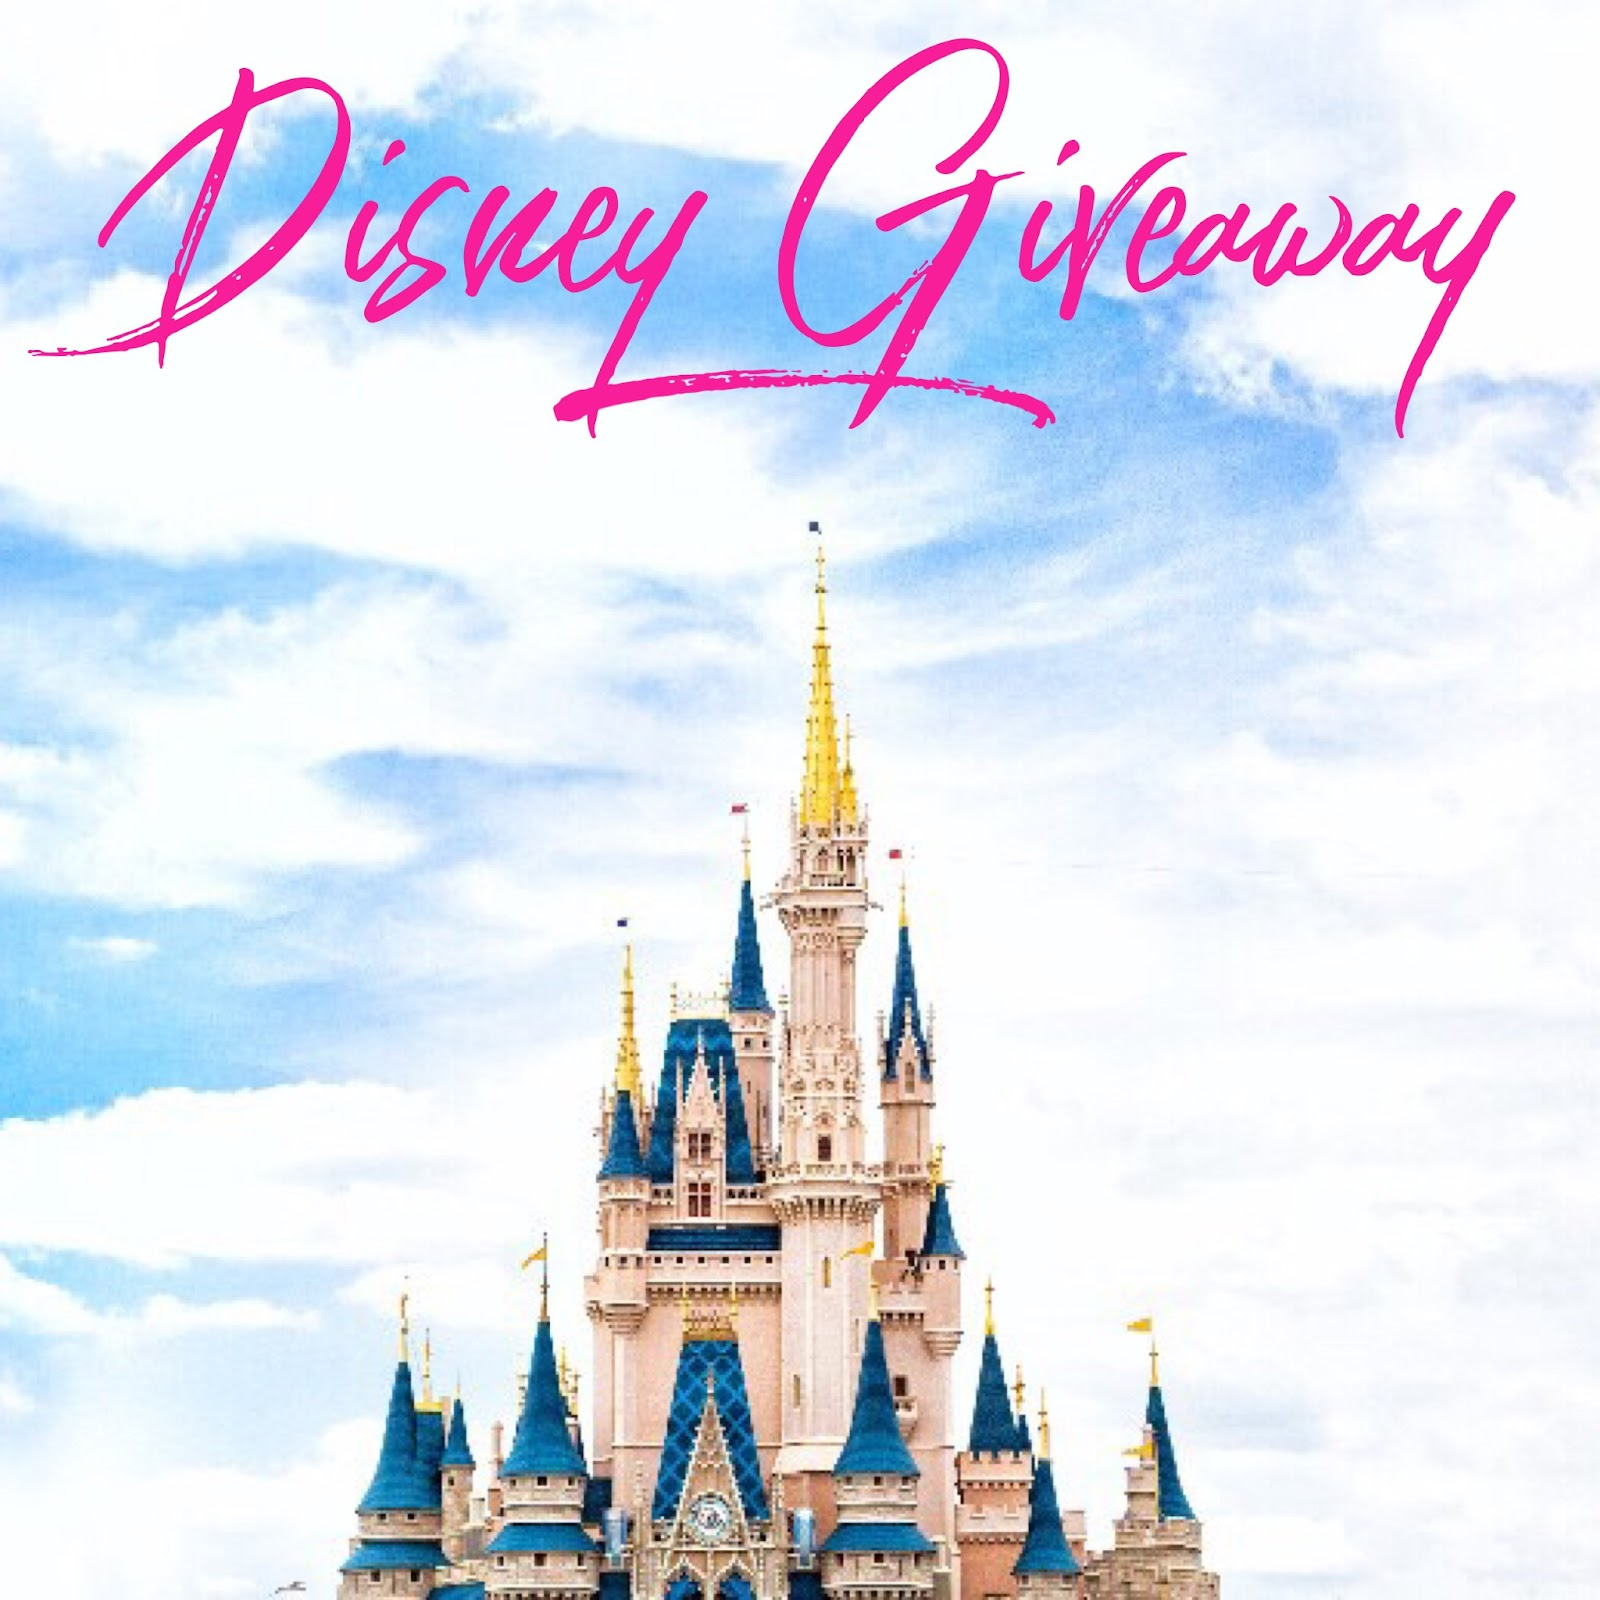 $150 Disney Gift Card Giveaway